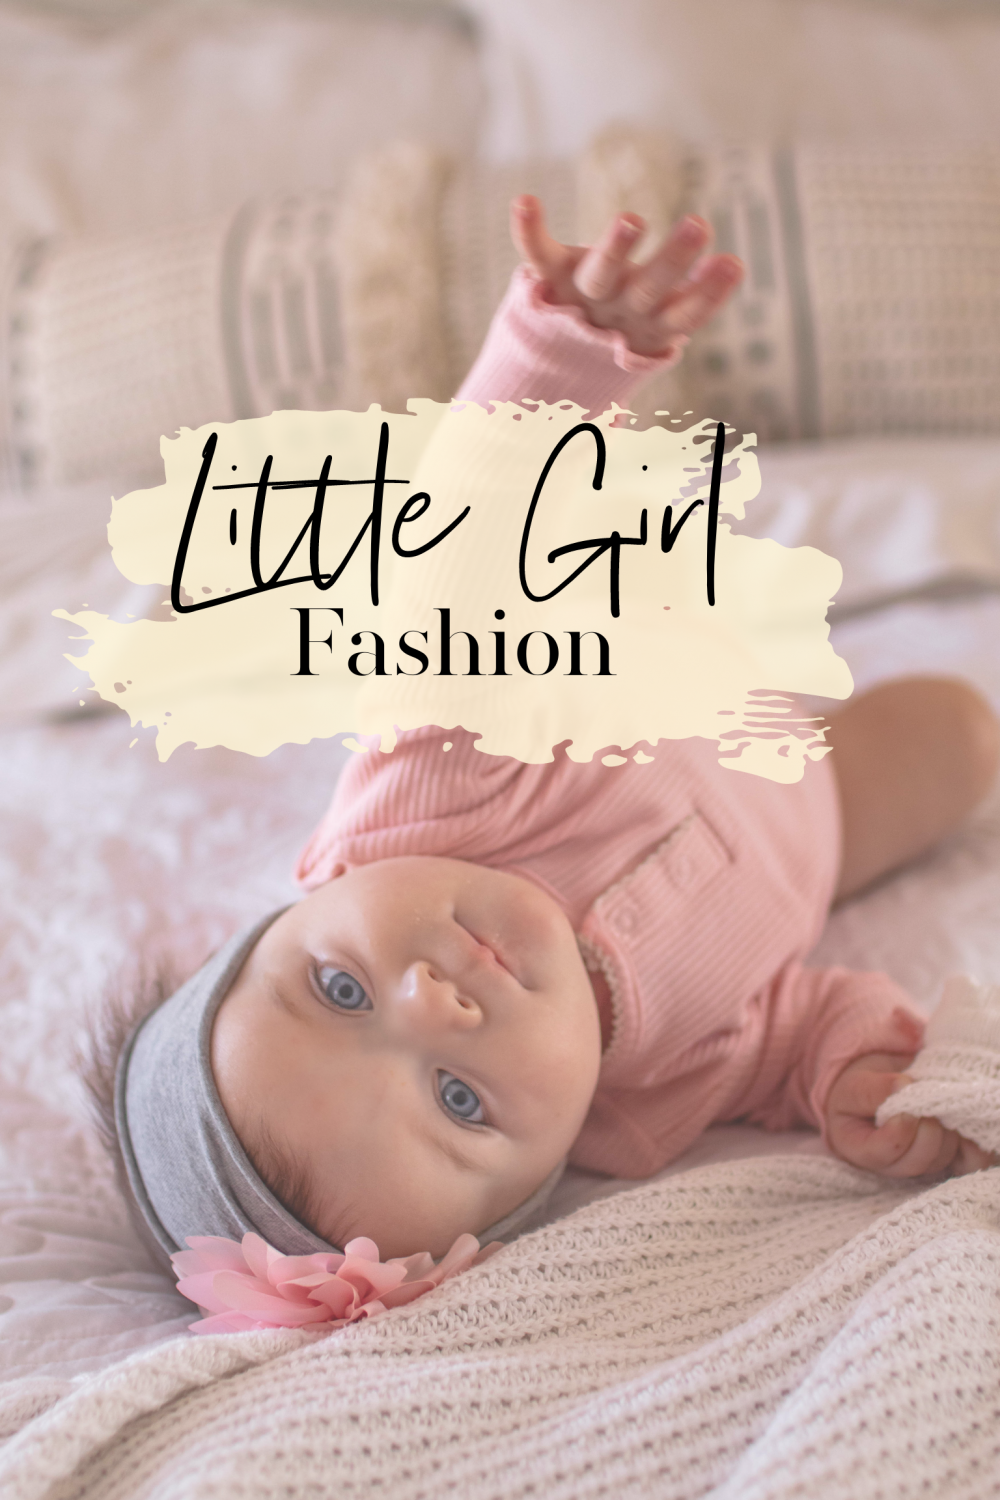 Baby Girl Fashion Slider